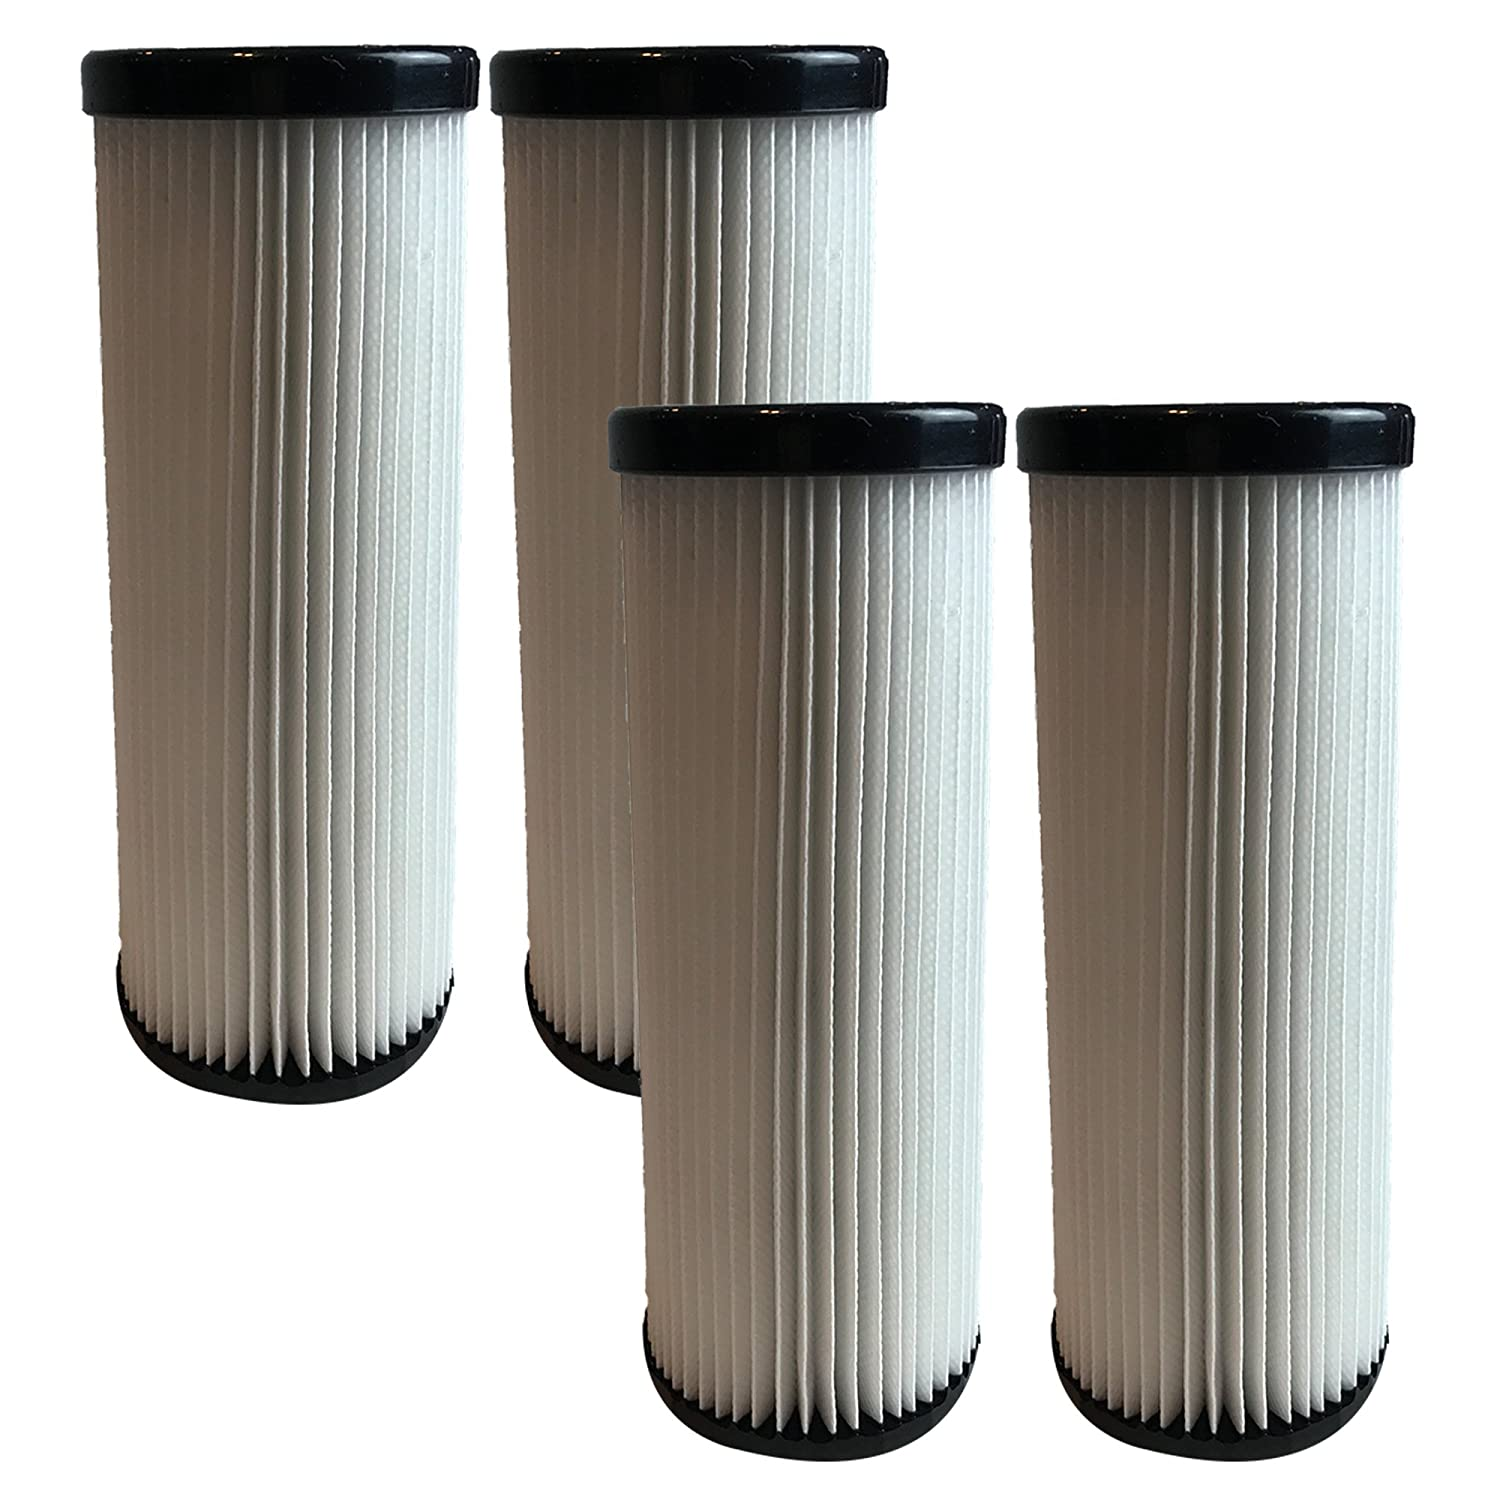 4 Dirt Devil F1 HEPA Filters, Long-Life WASHABLE, REUSABLE and HEPA Filtration, Compare With Dirt Devil Part # 3-JC0280-000, 2-JC0280-000 (3JC0280000, 2JC0280000), Designed and Engineered by Crucial Vacuum